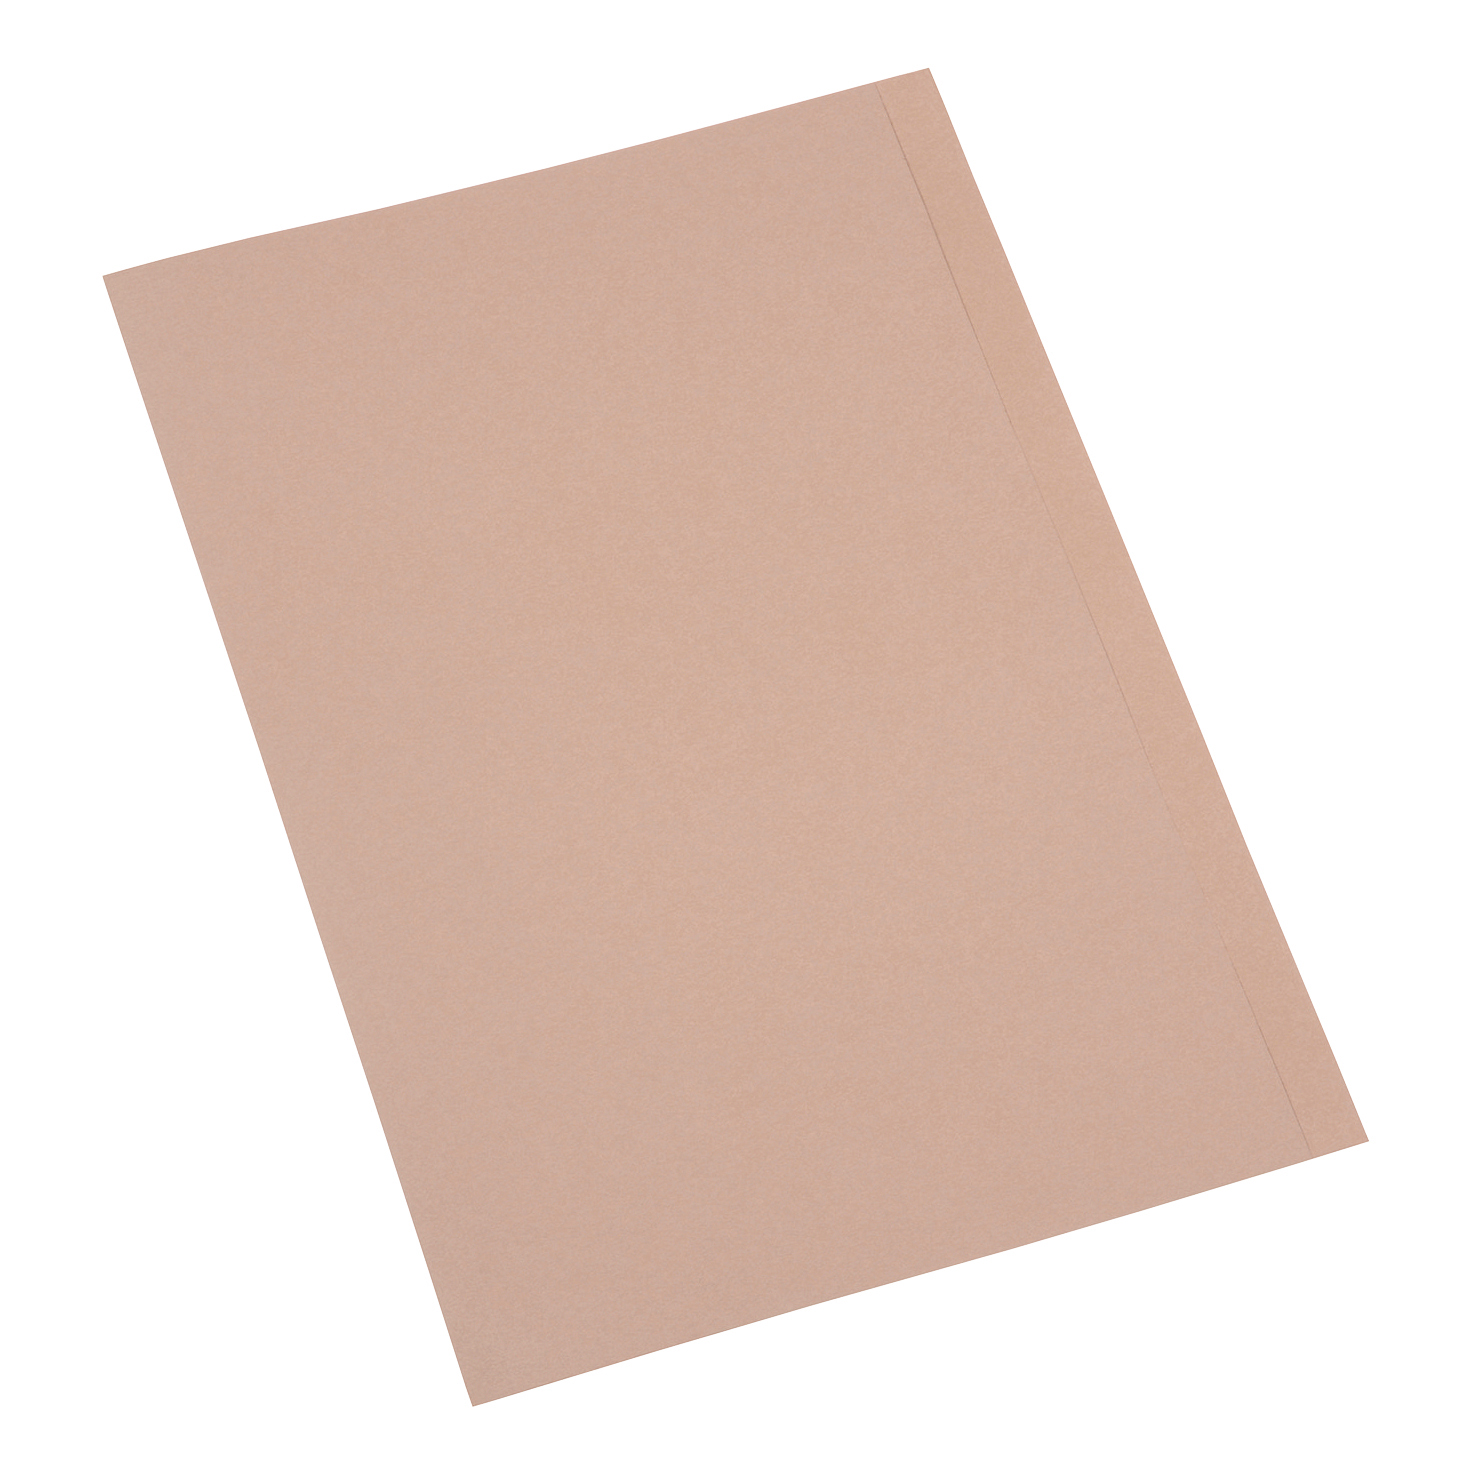 Square Cut Folders 5 Star Eco Kraft Square Cut Folders 170gsm Foolscap Recycled Buff Pack 100